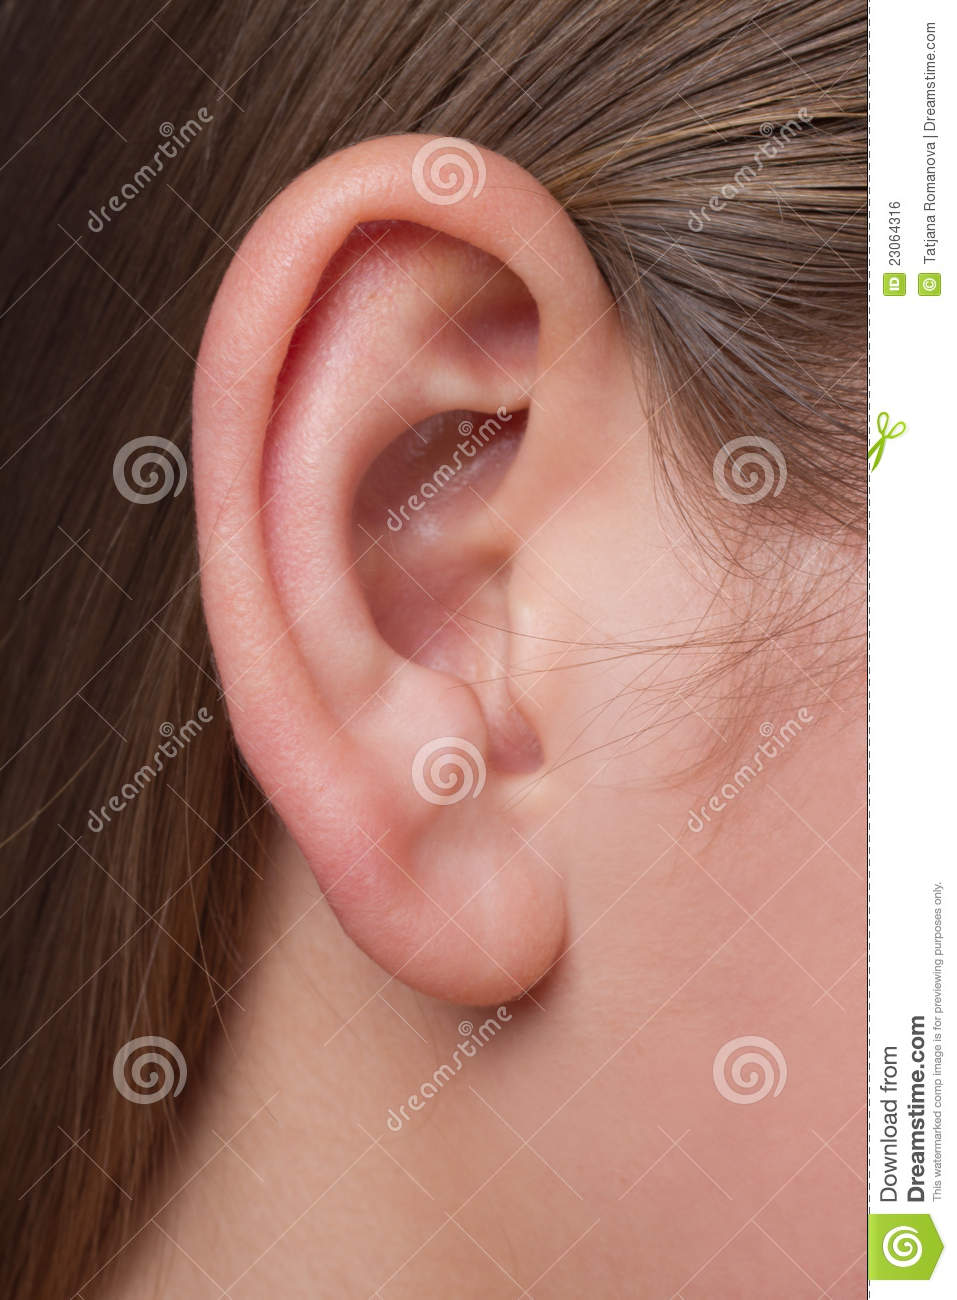 A young woman s ear close-up